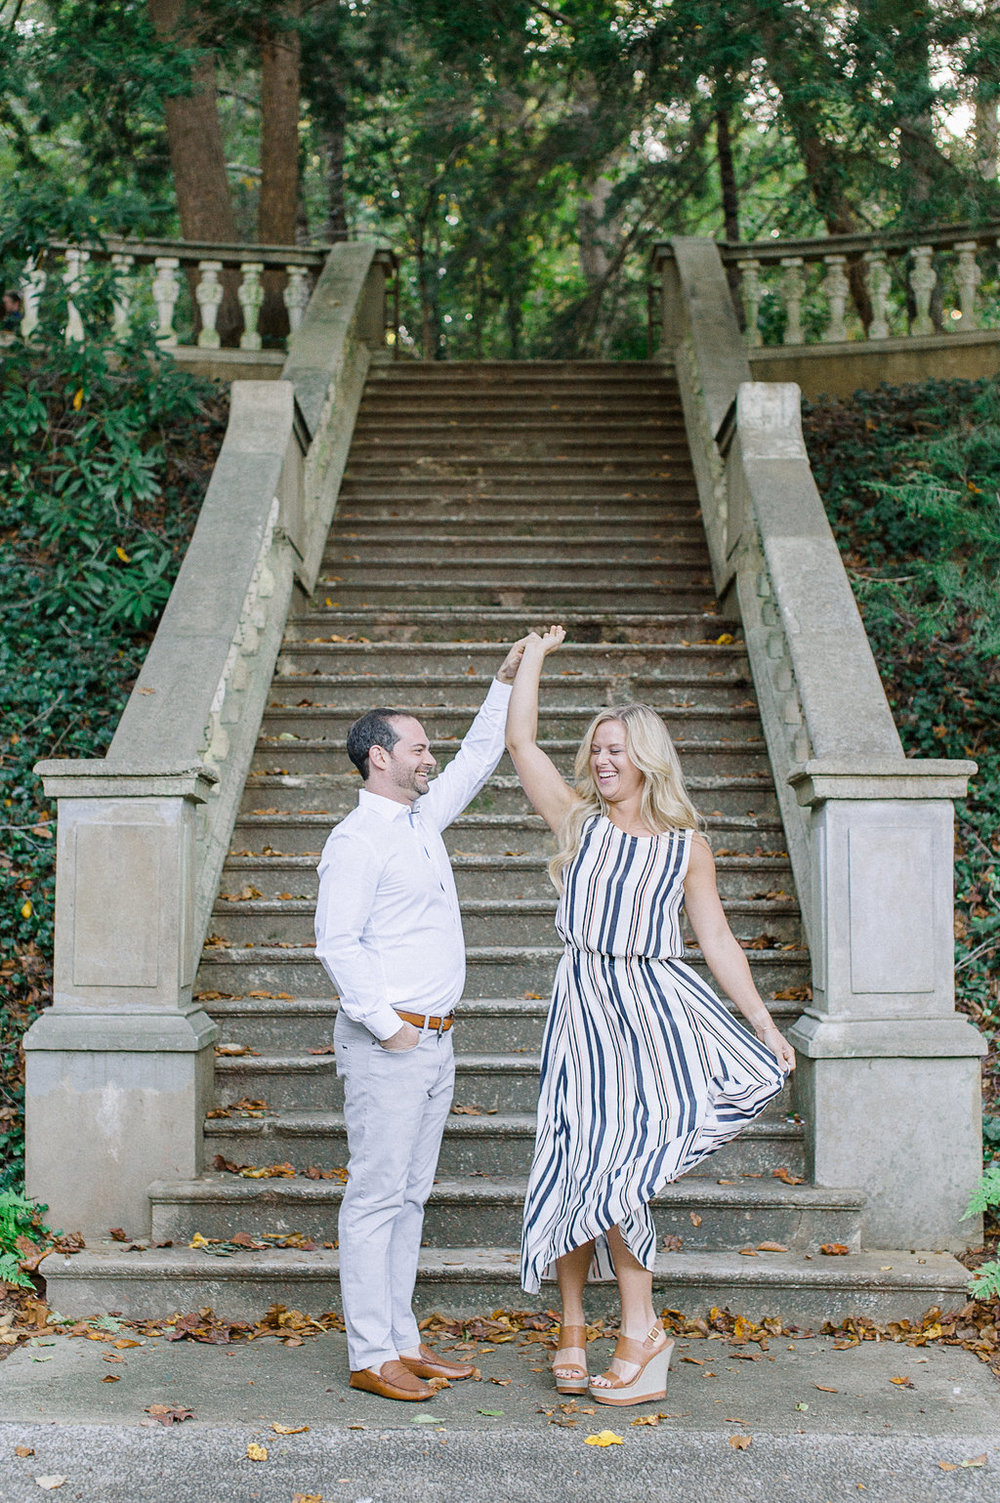 Cator-Woolford-Gardens-Engagement-atlanta-wedding-photographer-hannah-forsberg-4.jpg